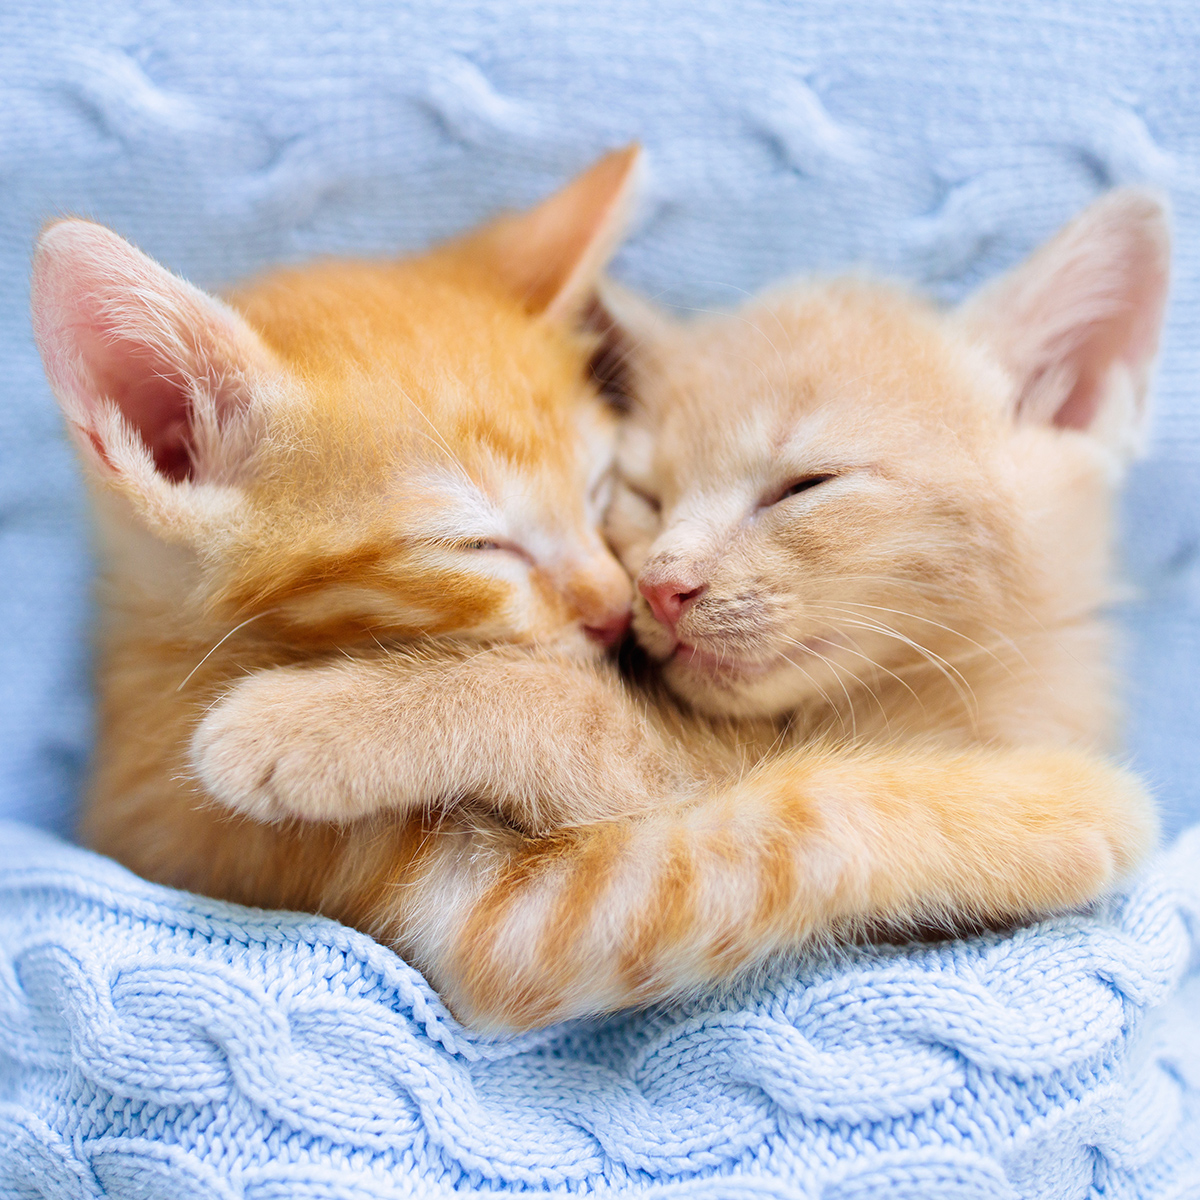 Happy International Hug Your Cat Day! Hug your cat(s) immediately and kiss their claws to honor them on this very special day. #Caturday